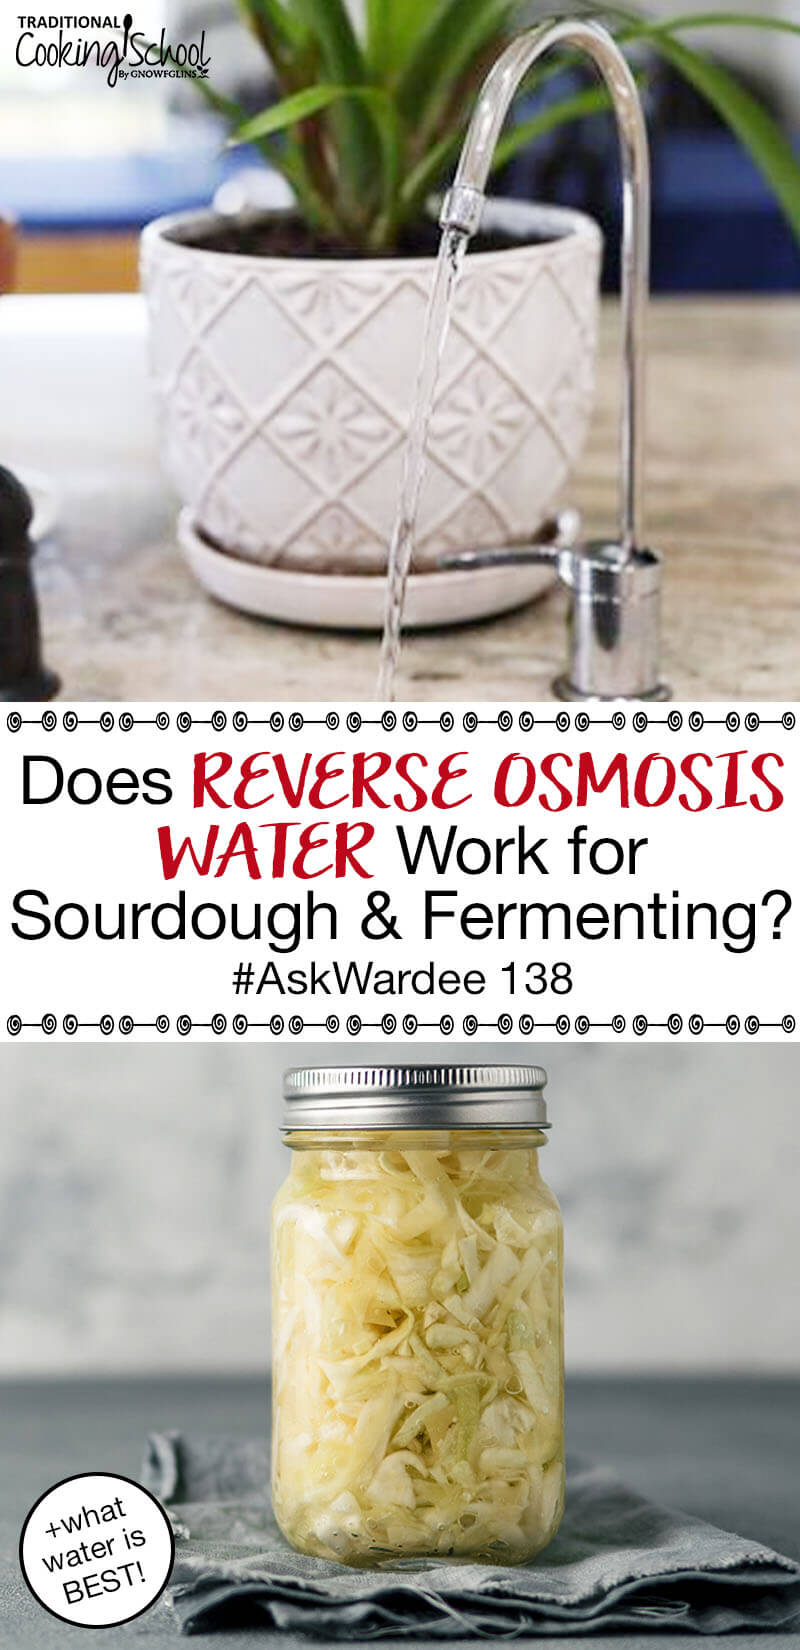 "photo collage of a running water faucet and Mason jar full of sauerkraut, with text overlay: ""Does Reverse Osmosis Water Work For Sourdough & Fermenting? (+which water is BEST!) #AskWardee 138"""